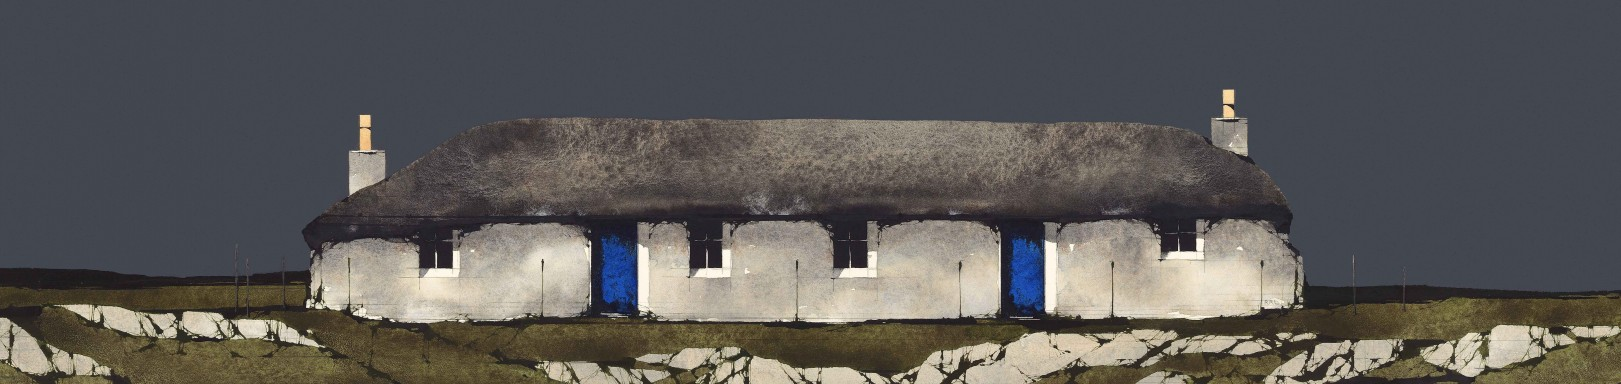 Ron Lawson_RL_Sheila's Cottage, Ulva_10x30